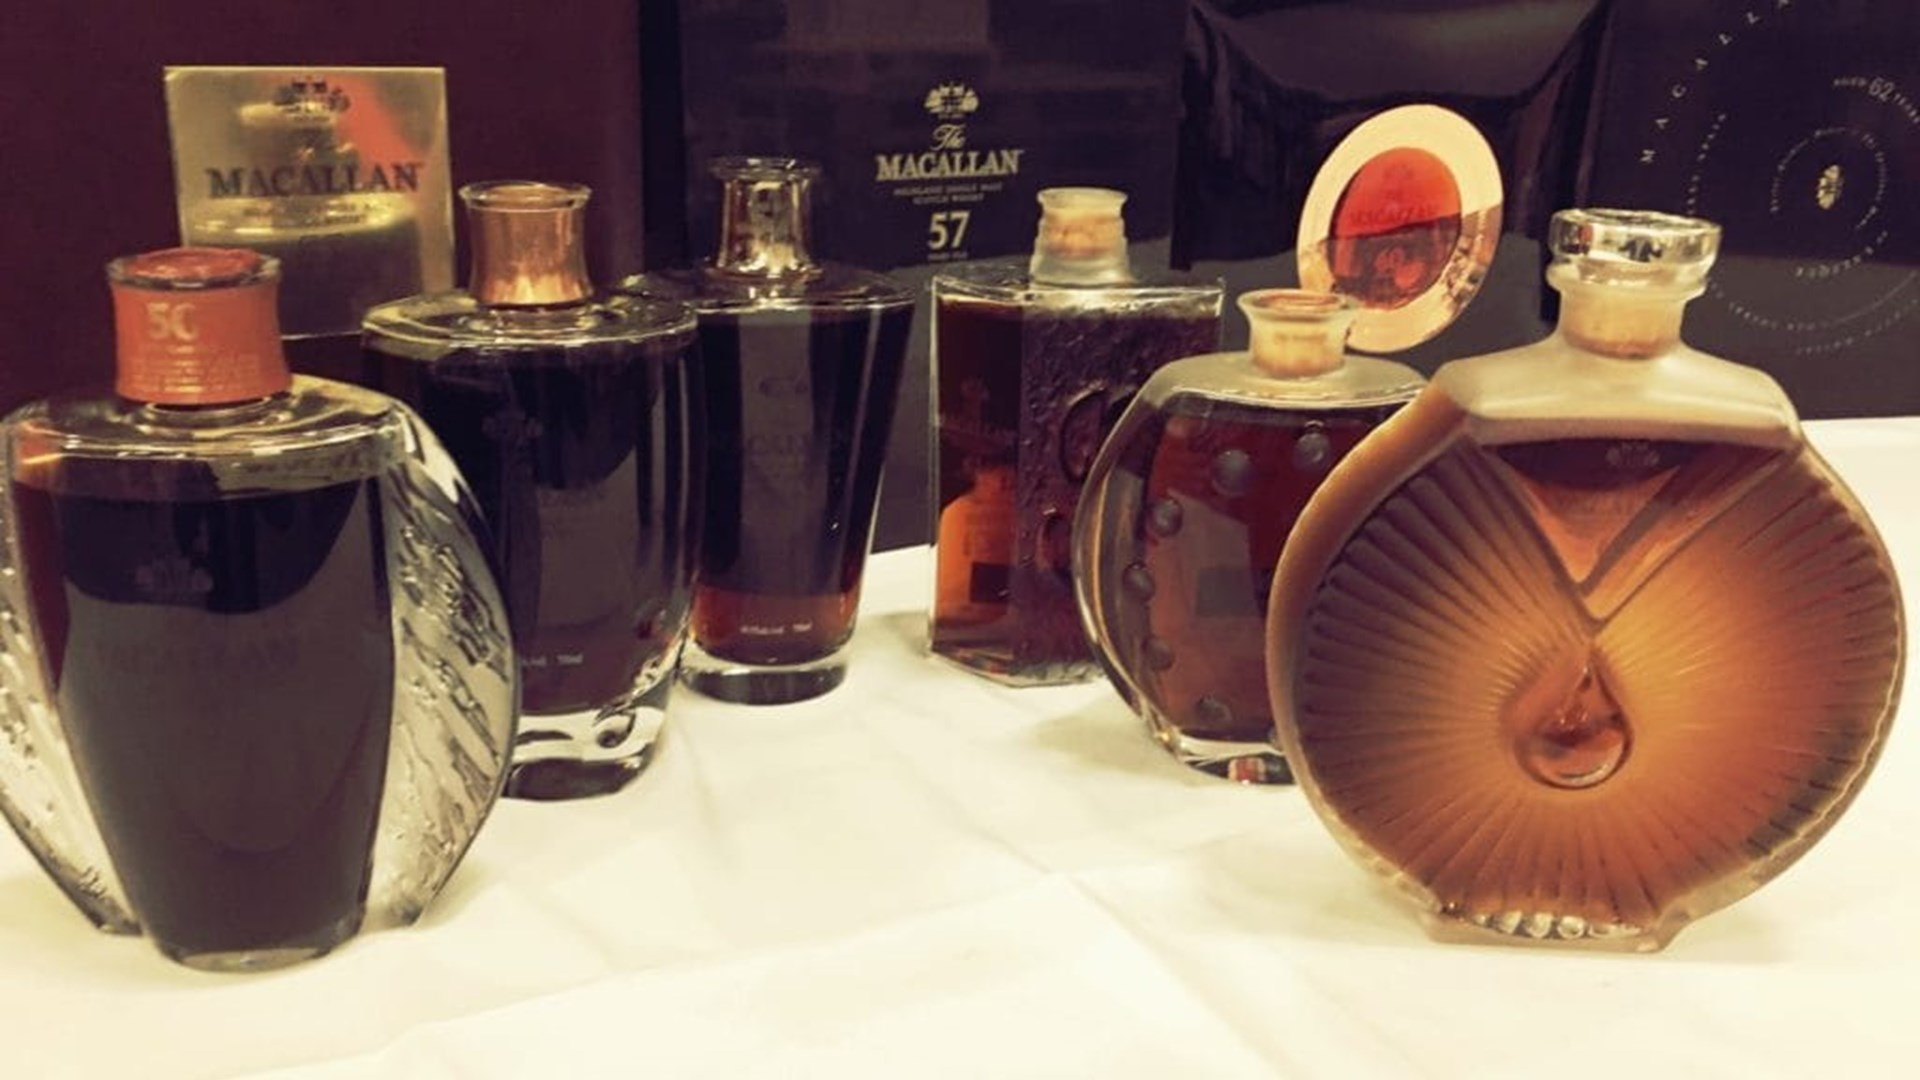 Macallan Lalique Legacy Collection bottles